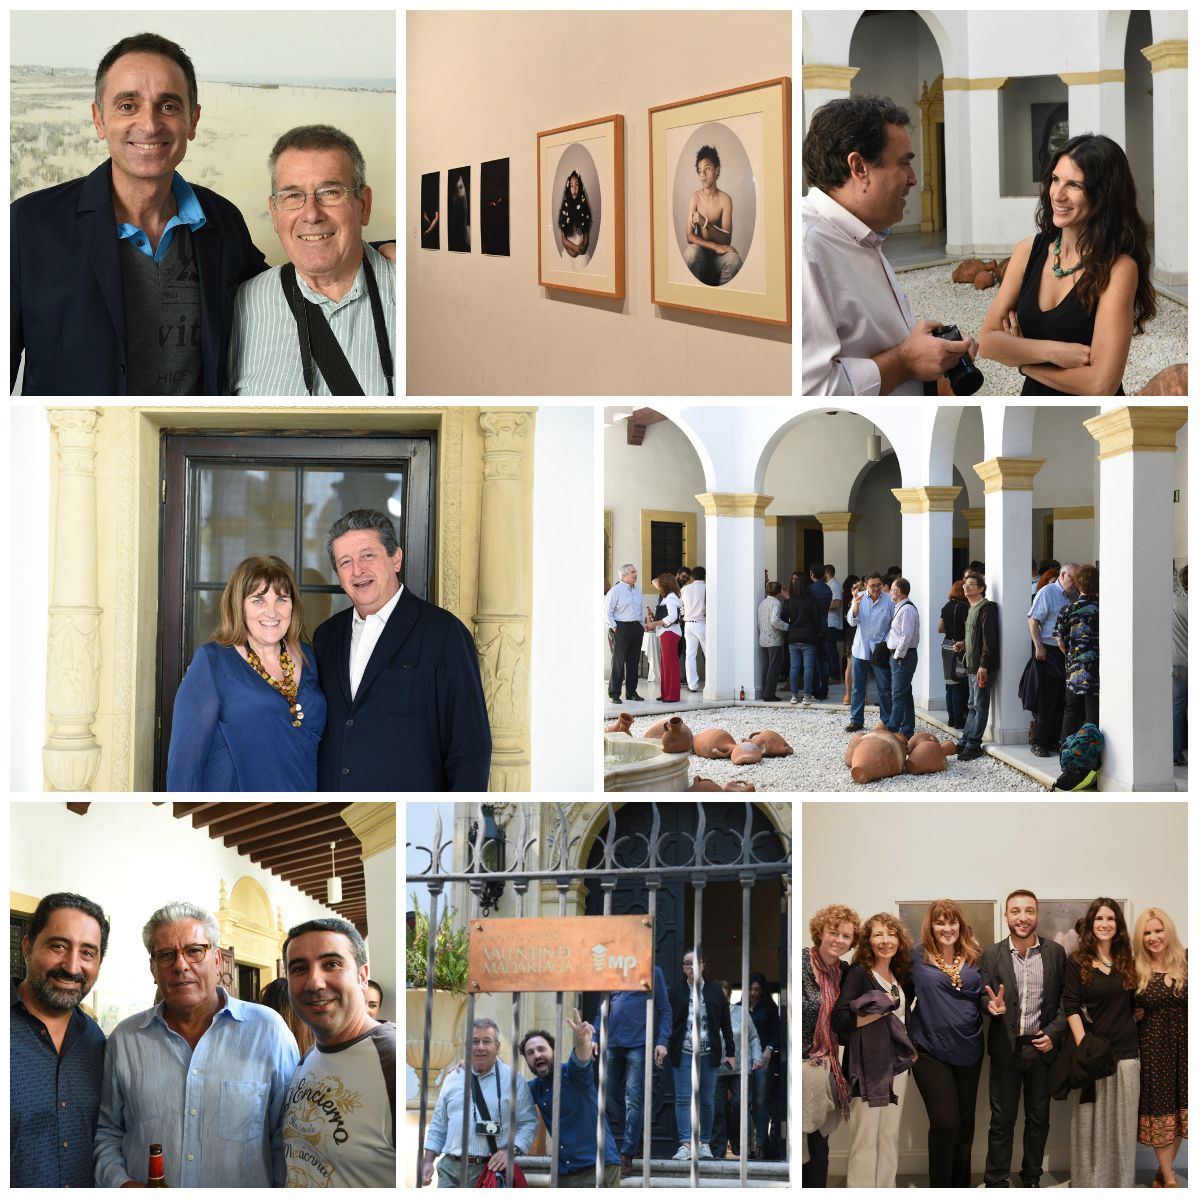 The opening of the Spin Off exhibition at the Fundacion Valentin Madariaga